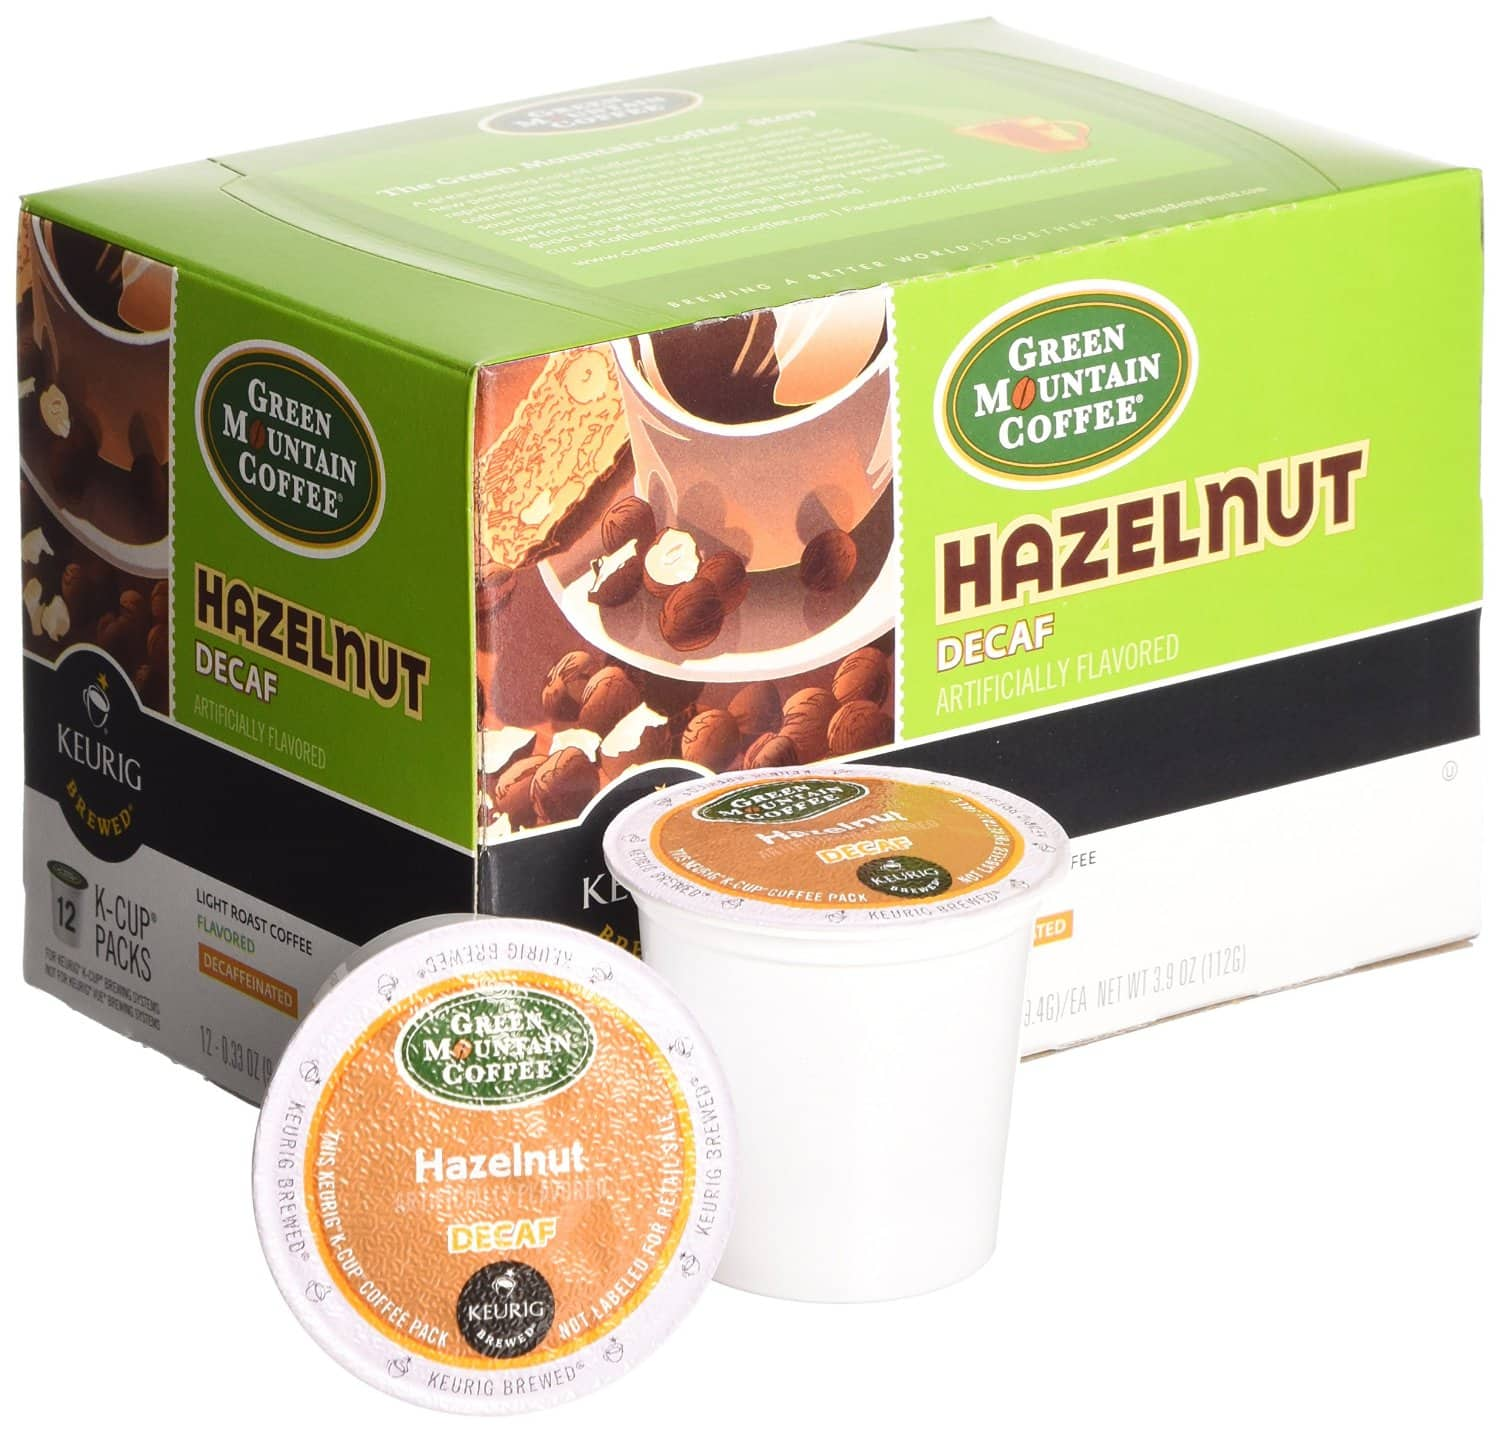 Green Mountain Coffee Hazelnut Decaf, Keurig K-Cups, 72 Count - $17.82 or less with S&S or $18.72 without - Amazon - FS with Prime